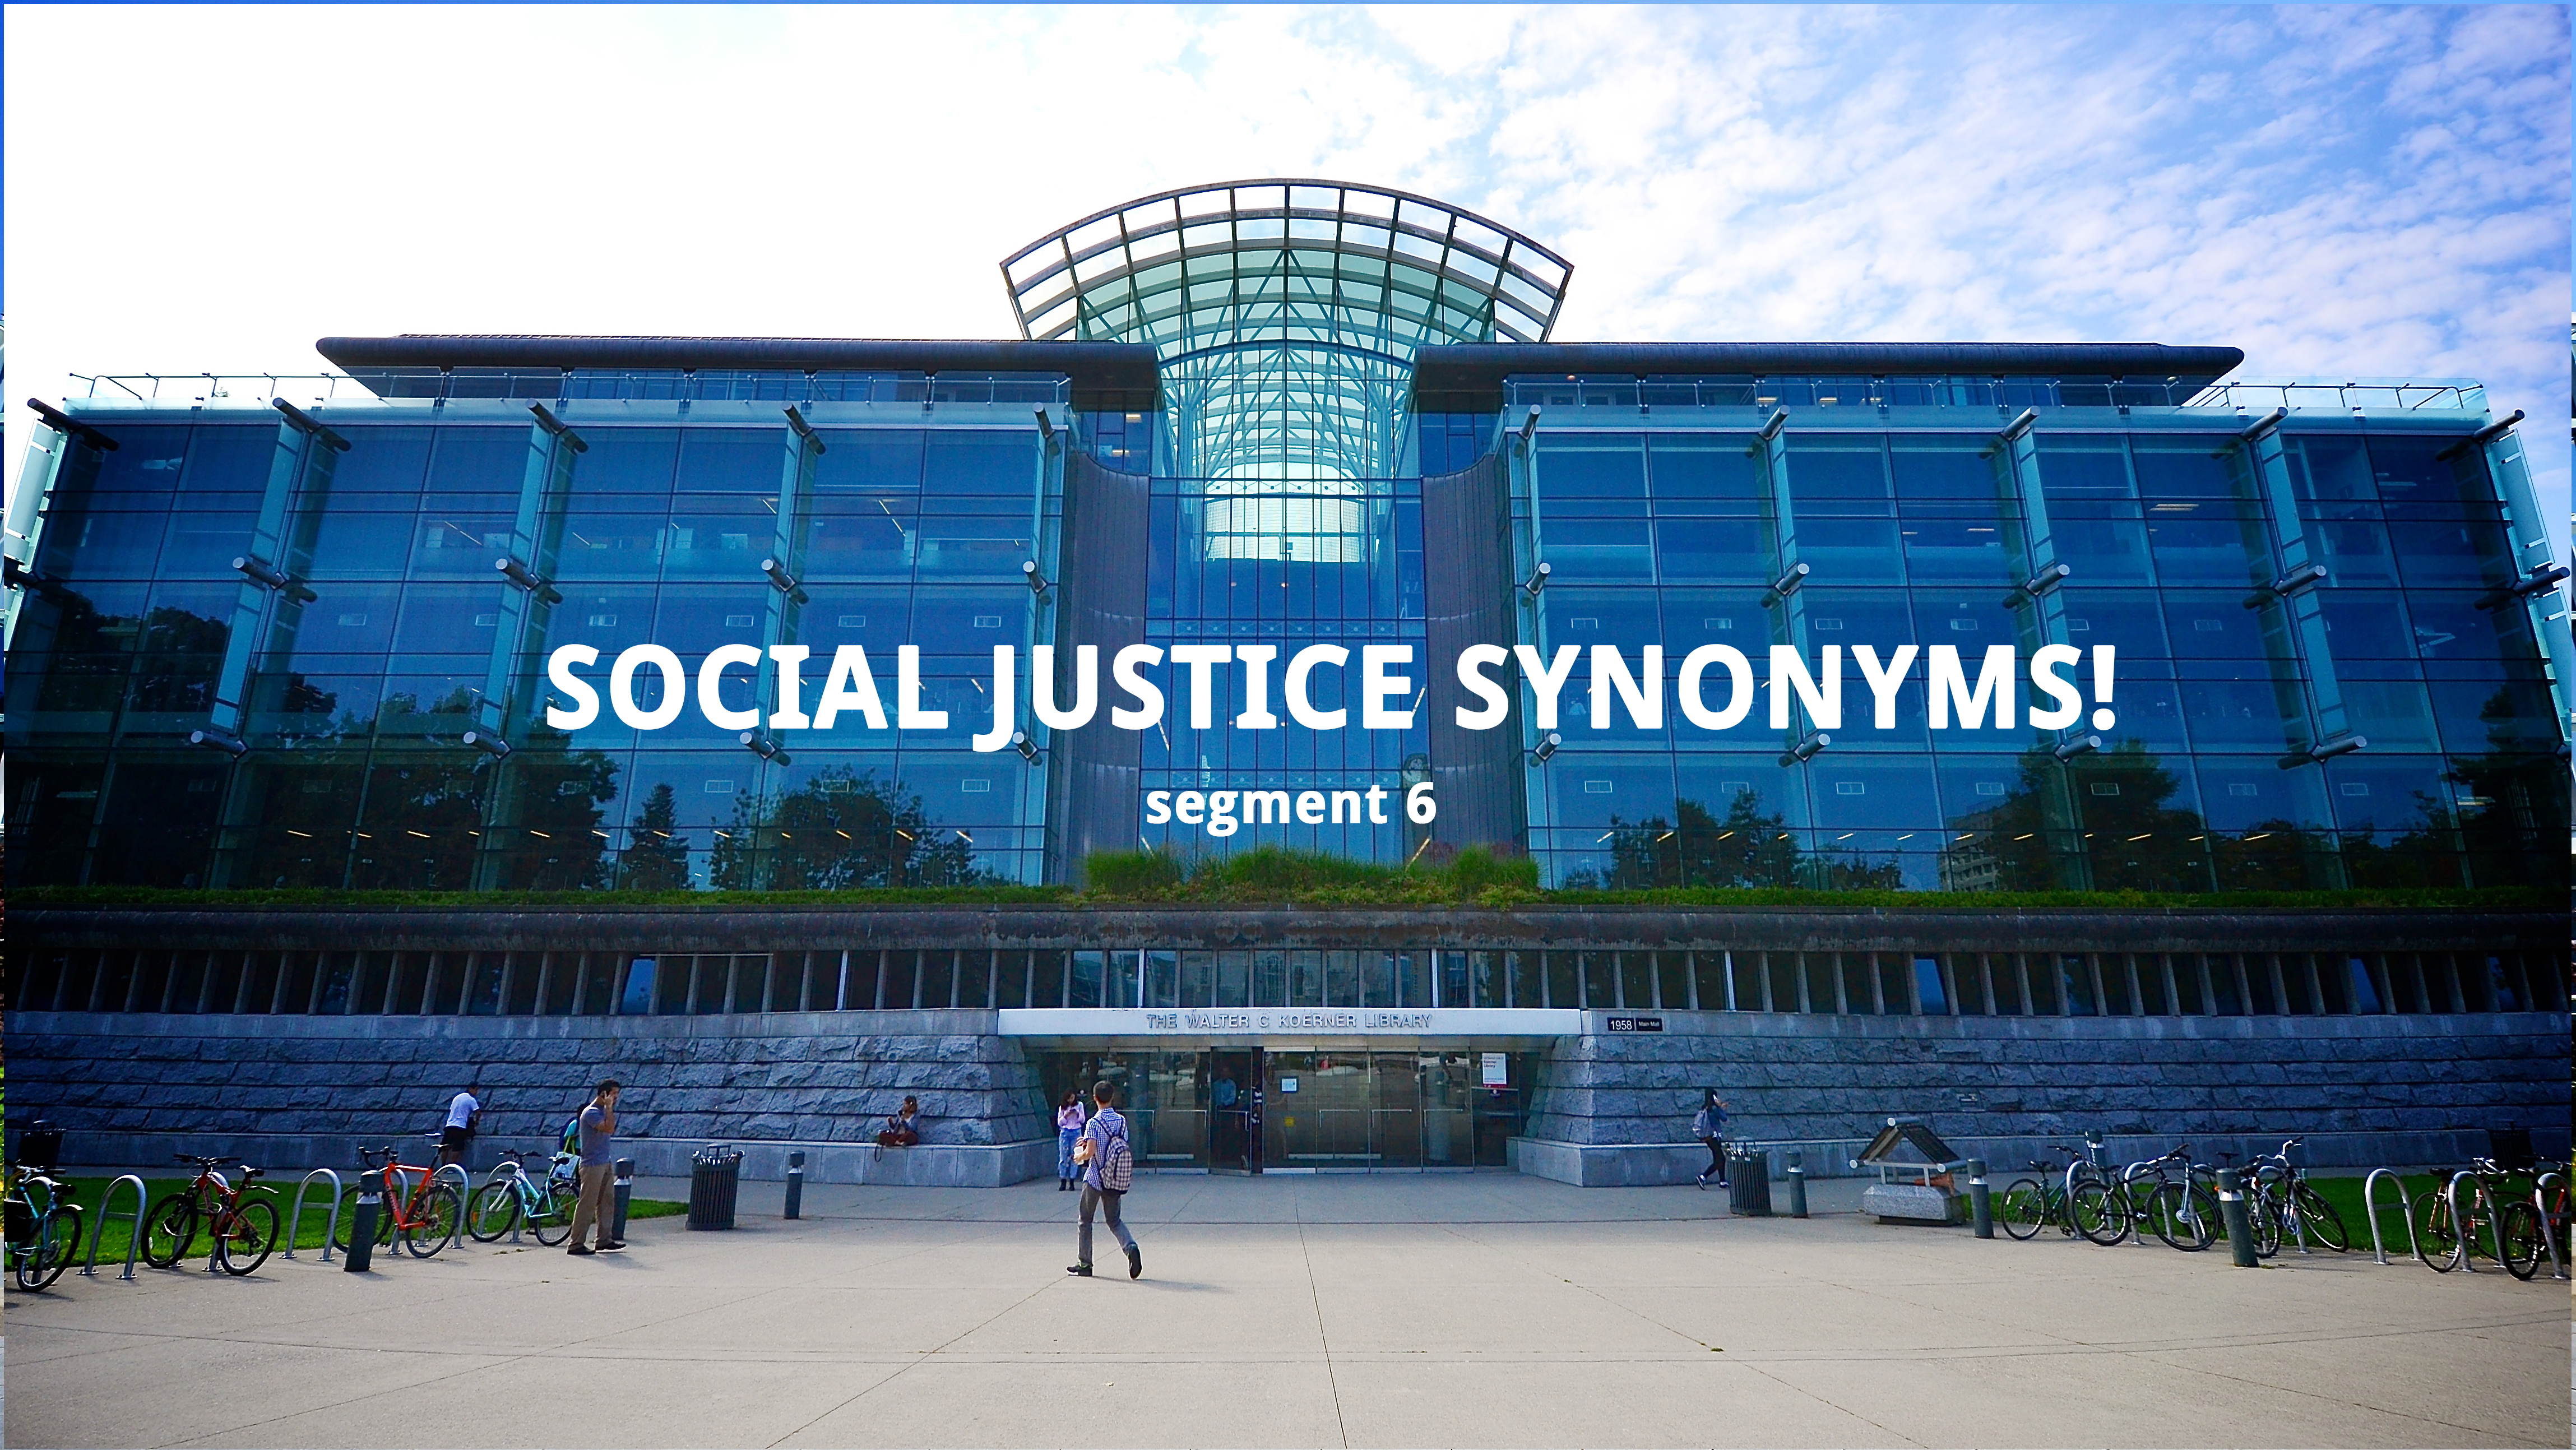 Social Justice Synonyms 6 Slut The Talon Submitted 7 years ago by join_you_in_the_sun. social justice synonyms 6 slut